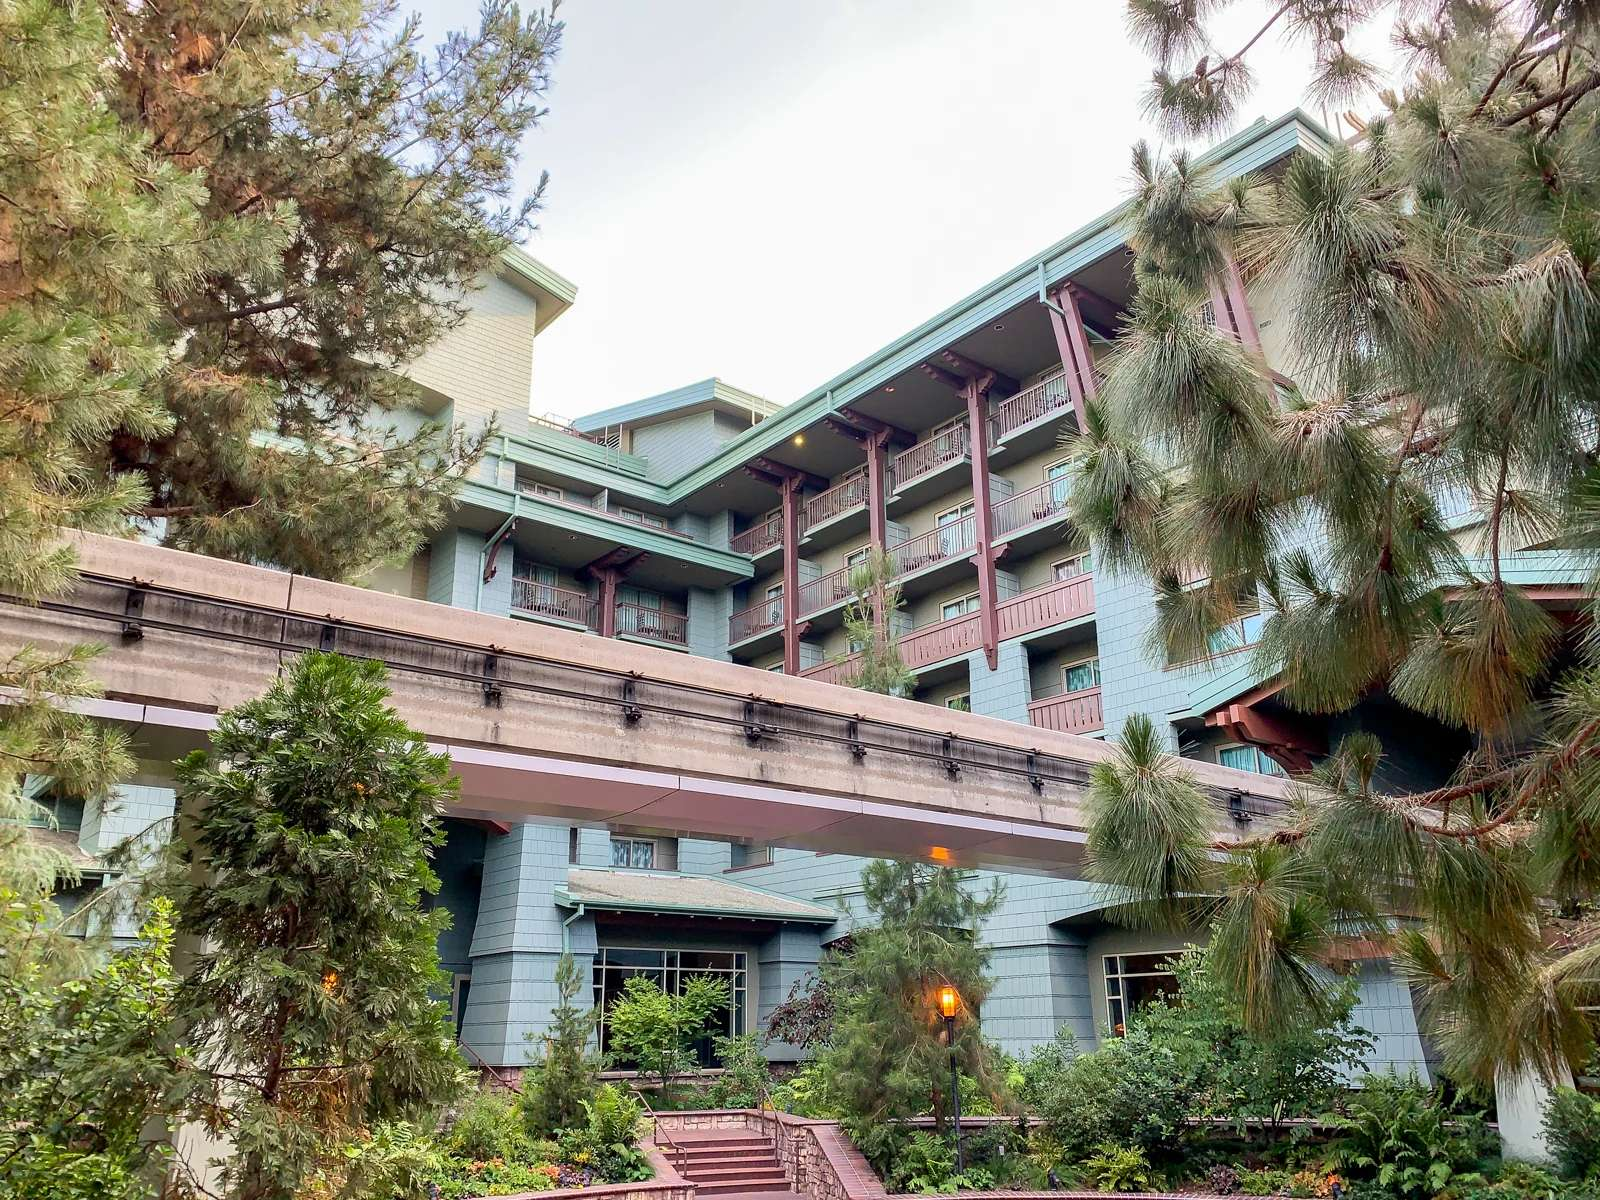 Disneyland Grand Californian Hotel Exterior